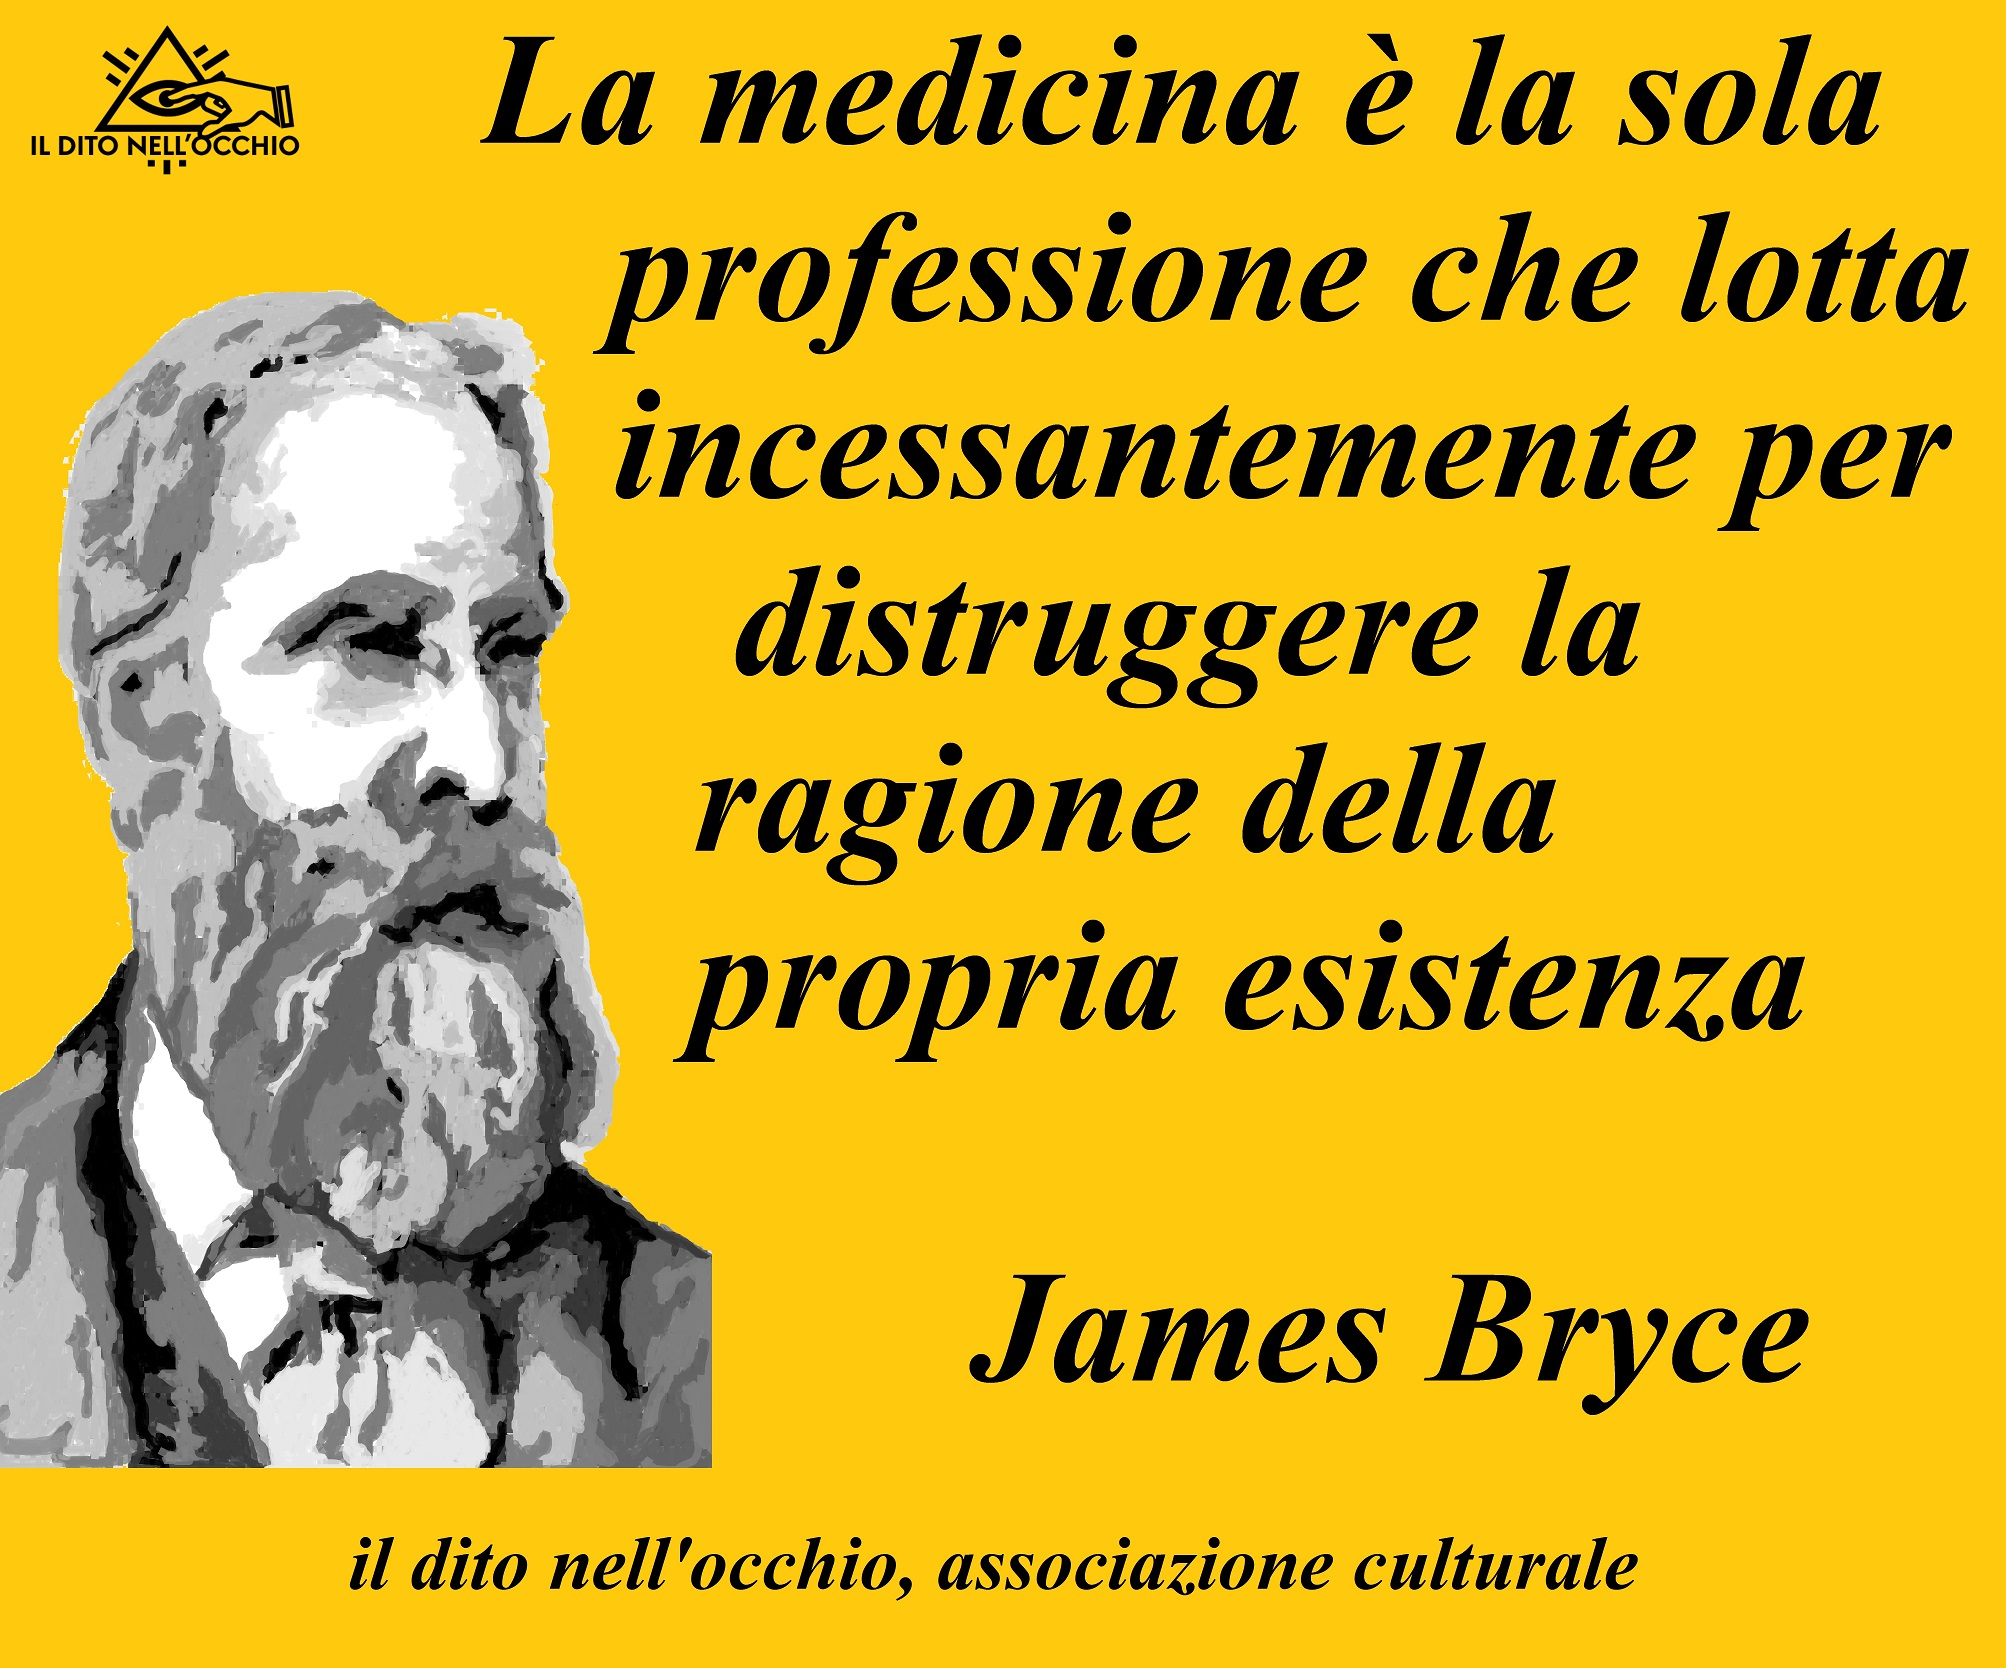 James Bryce